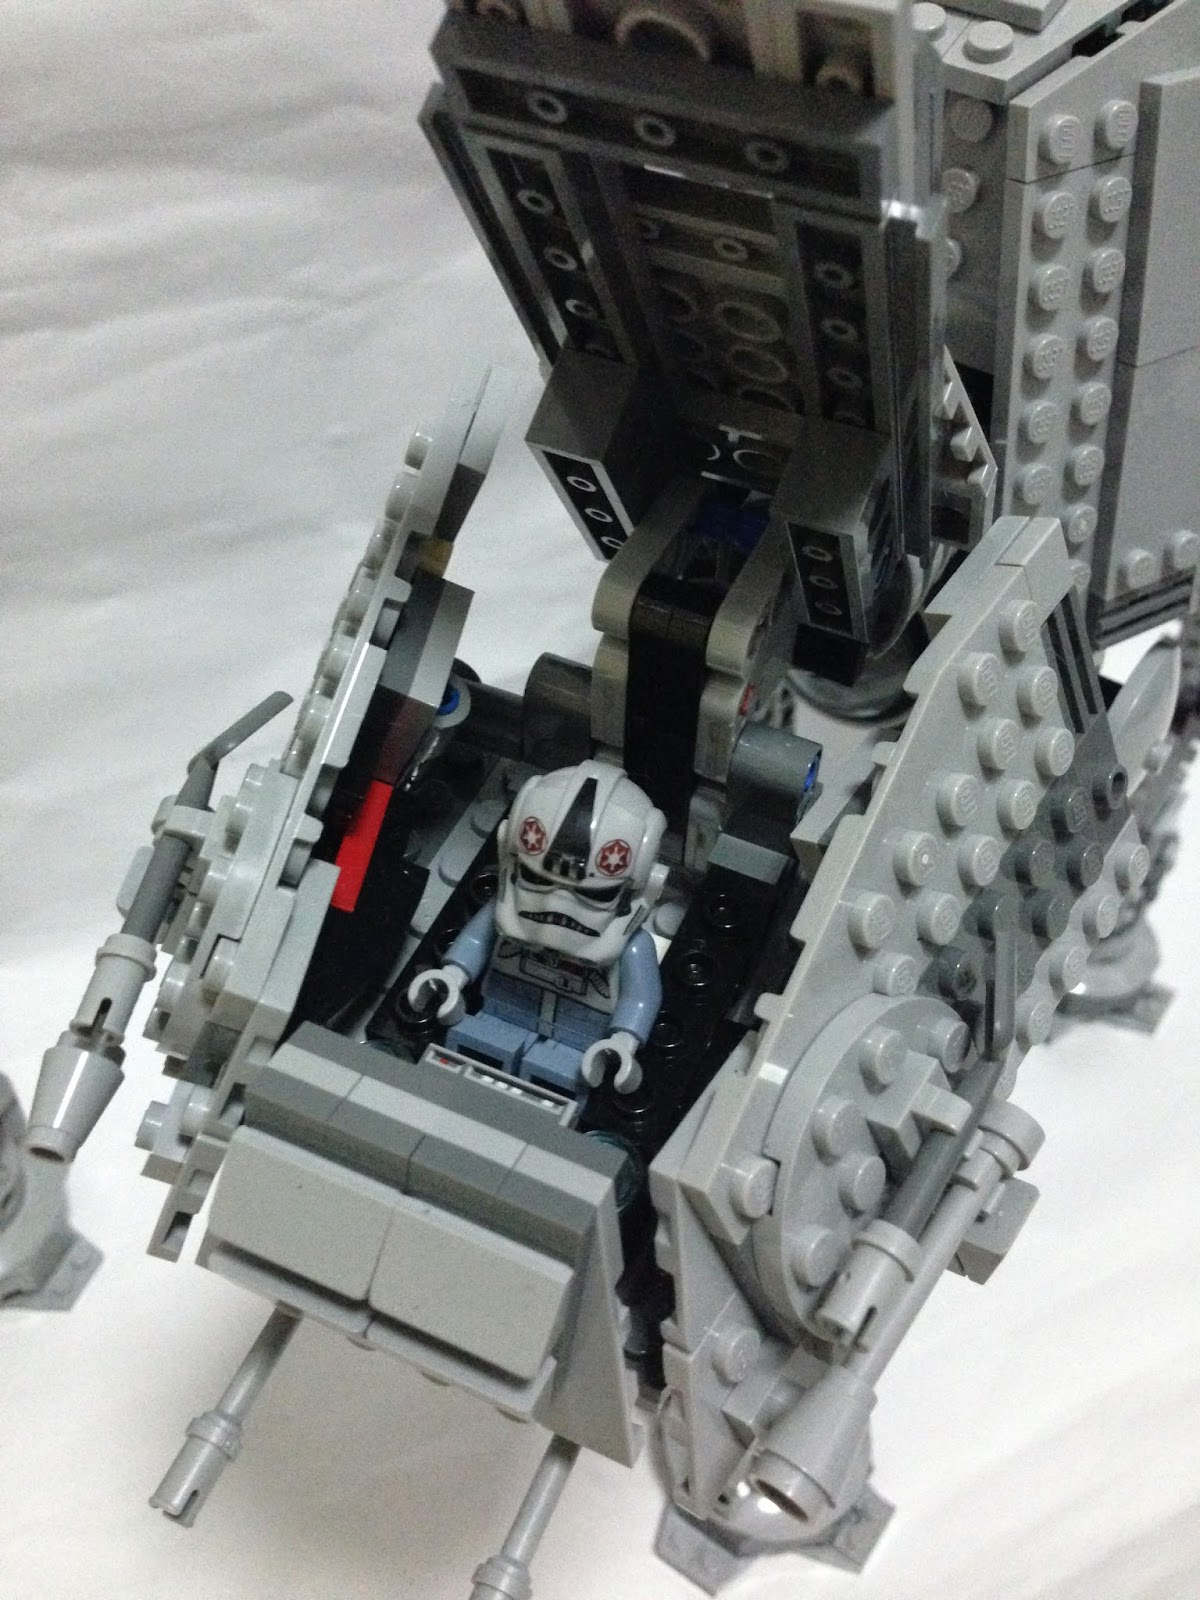 The Marriage Of Lego And Star Wars Review 75054 At At At Ats